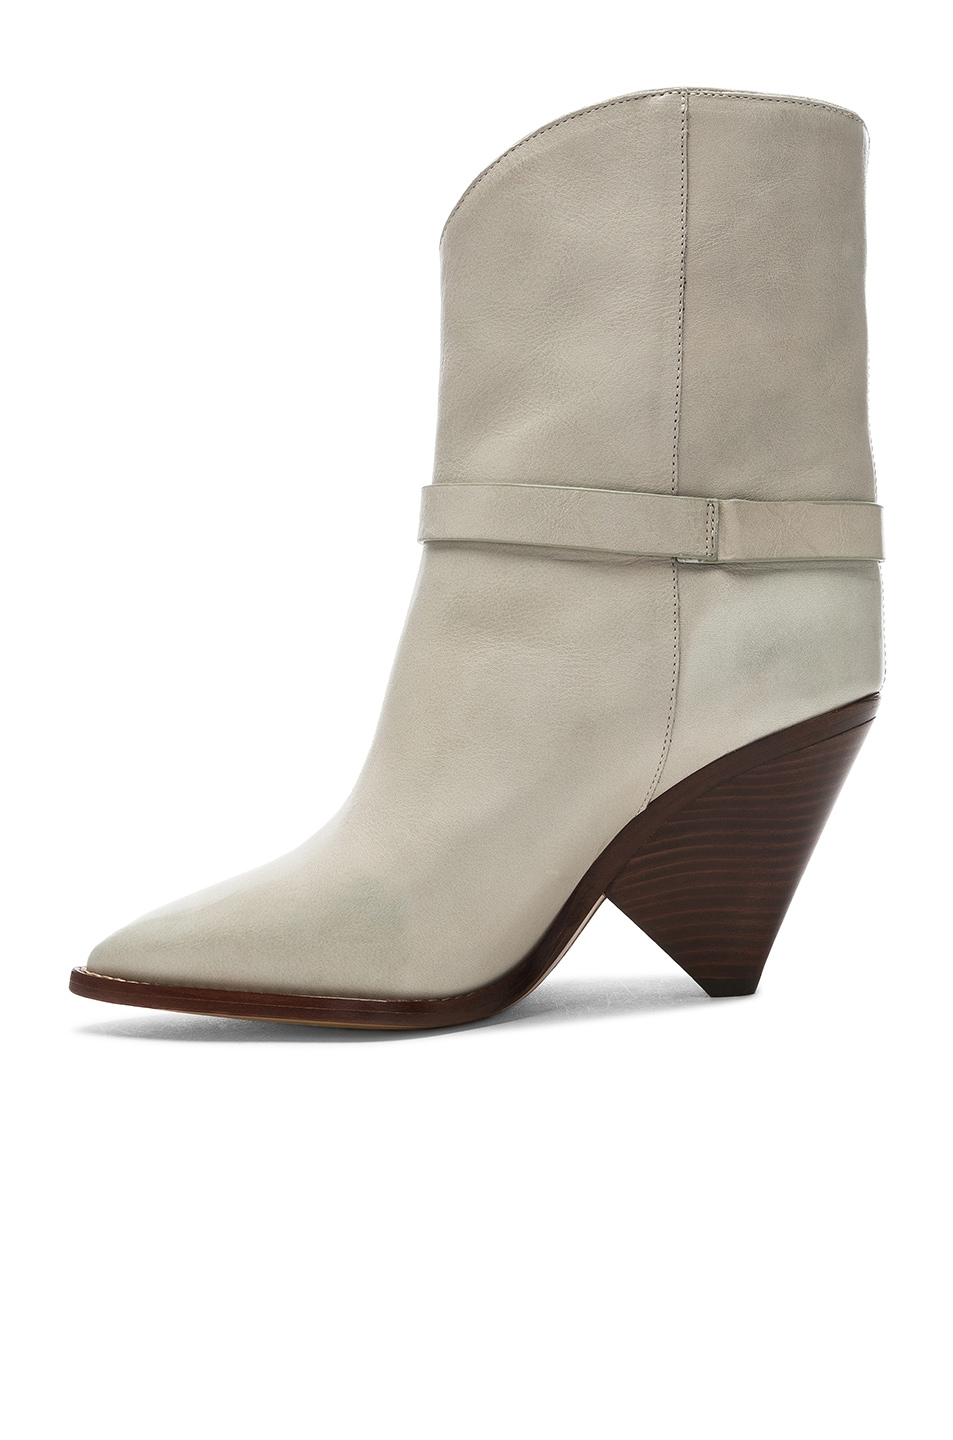 Image 5 of Isabel Marant Leather Loffen Boots in Chalk